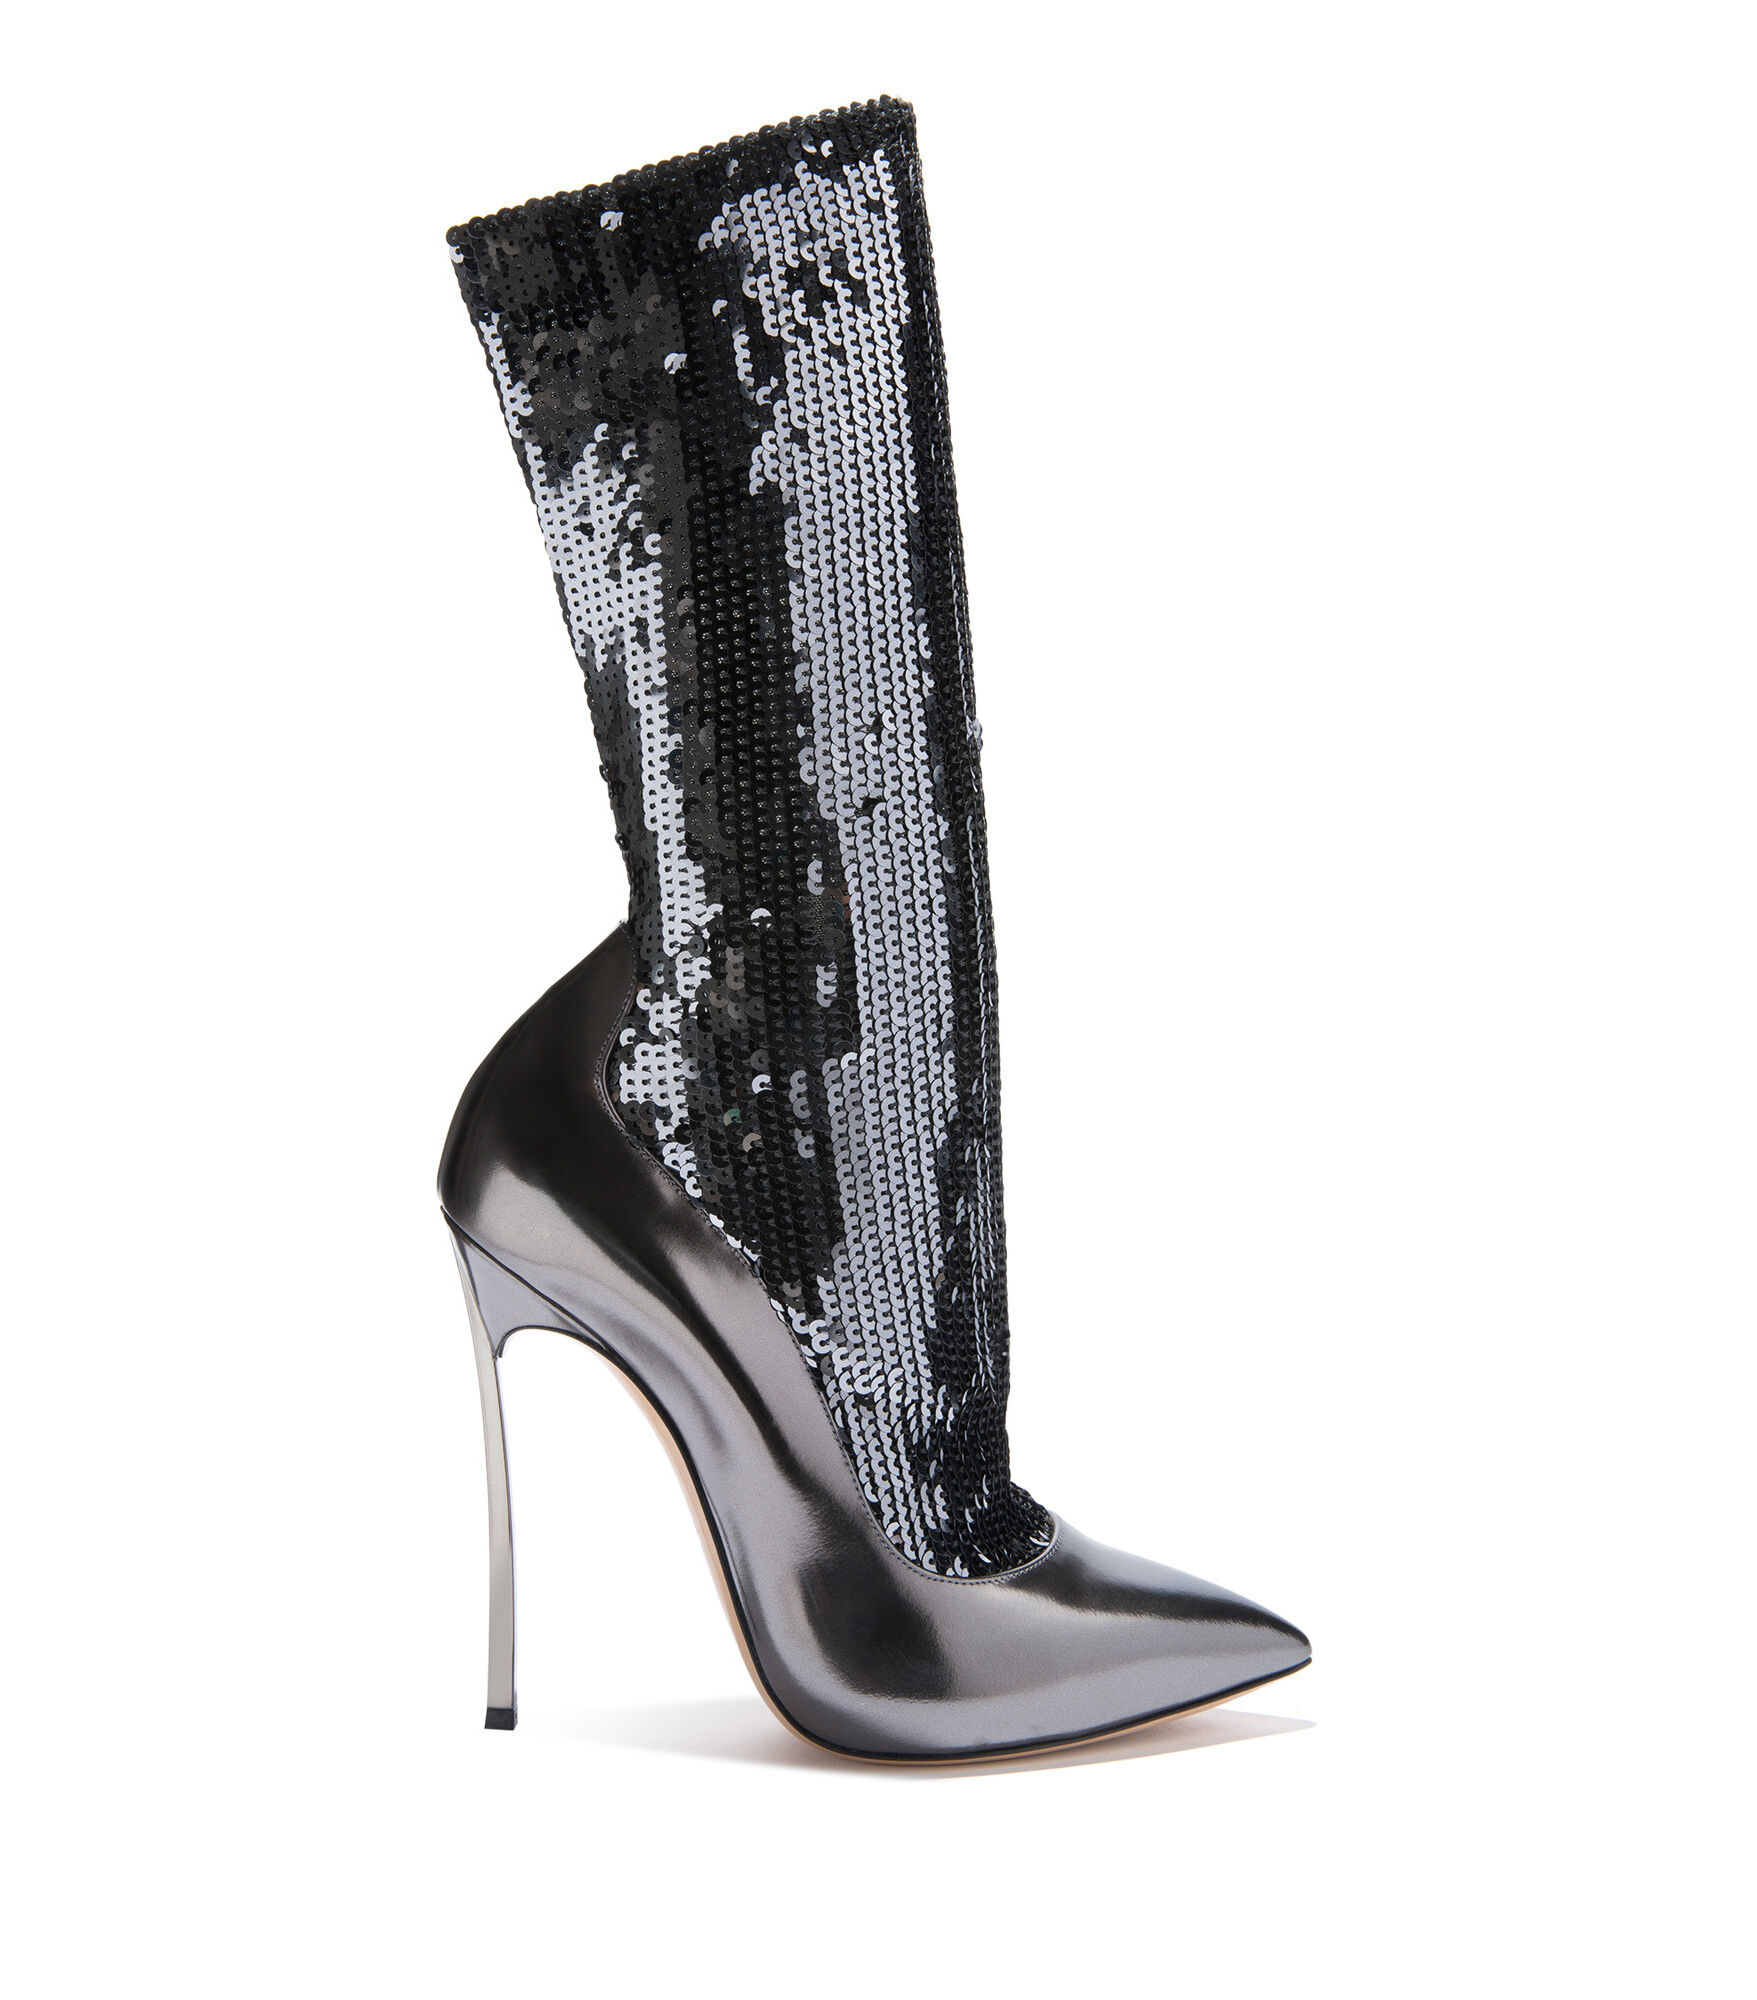 Casadei Ankle Boots - Blade Zinc Elasticated socks covered in sequins